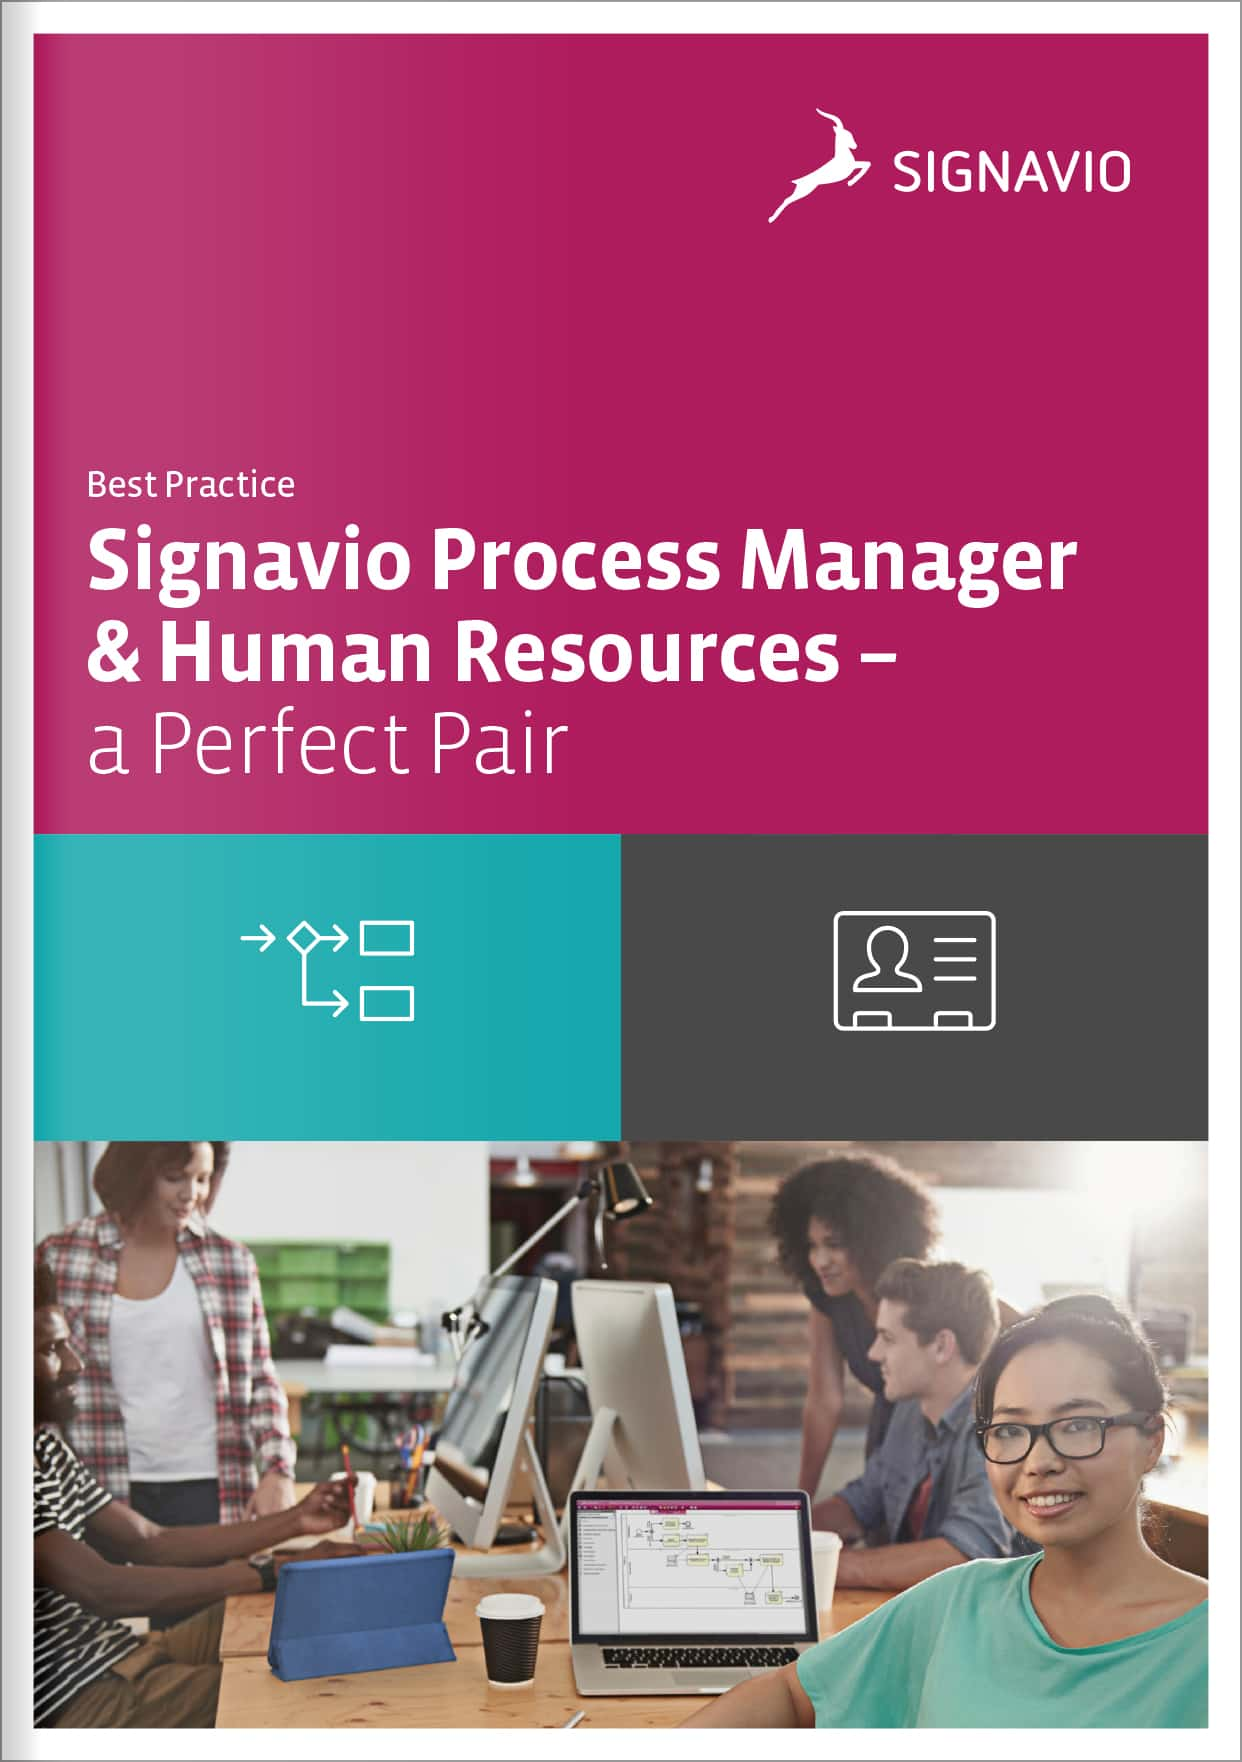 signavio-process-manager-and-human-resources-cover